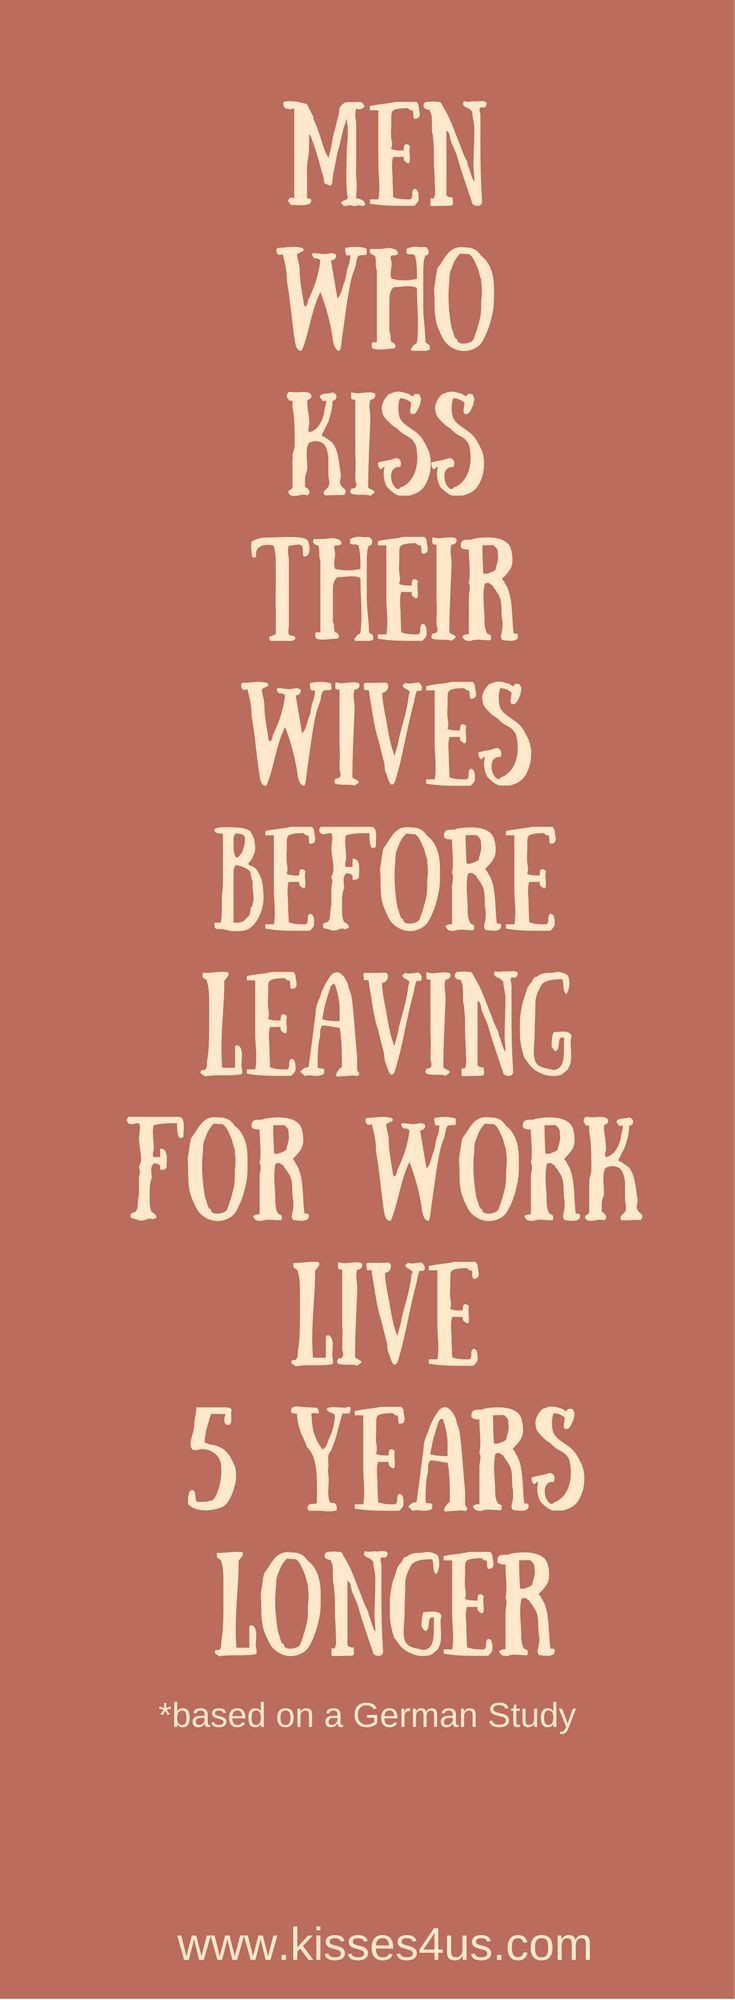 Quotes Of Marriage  Best 25 Quotes marriage ideas on Pinterest